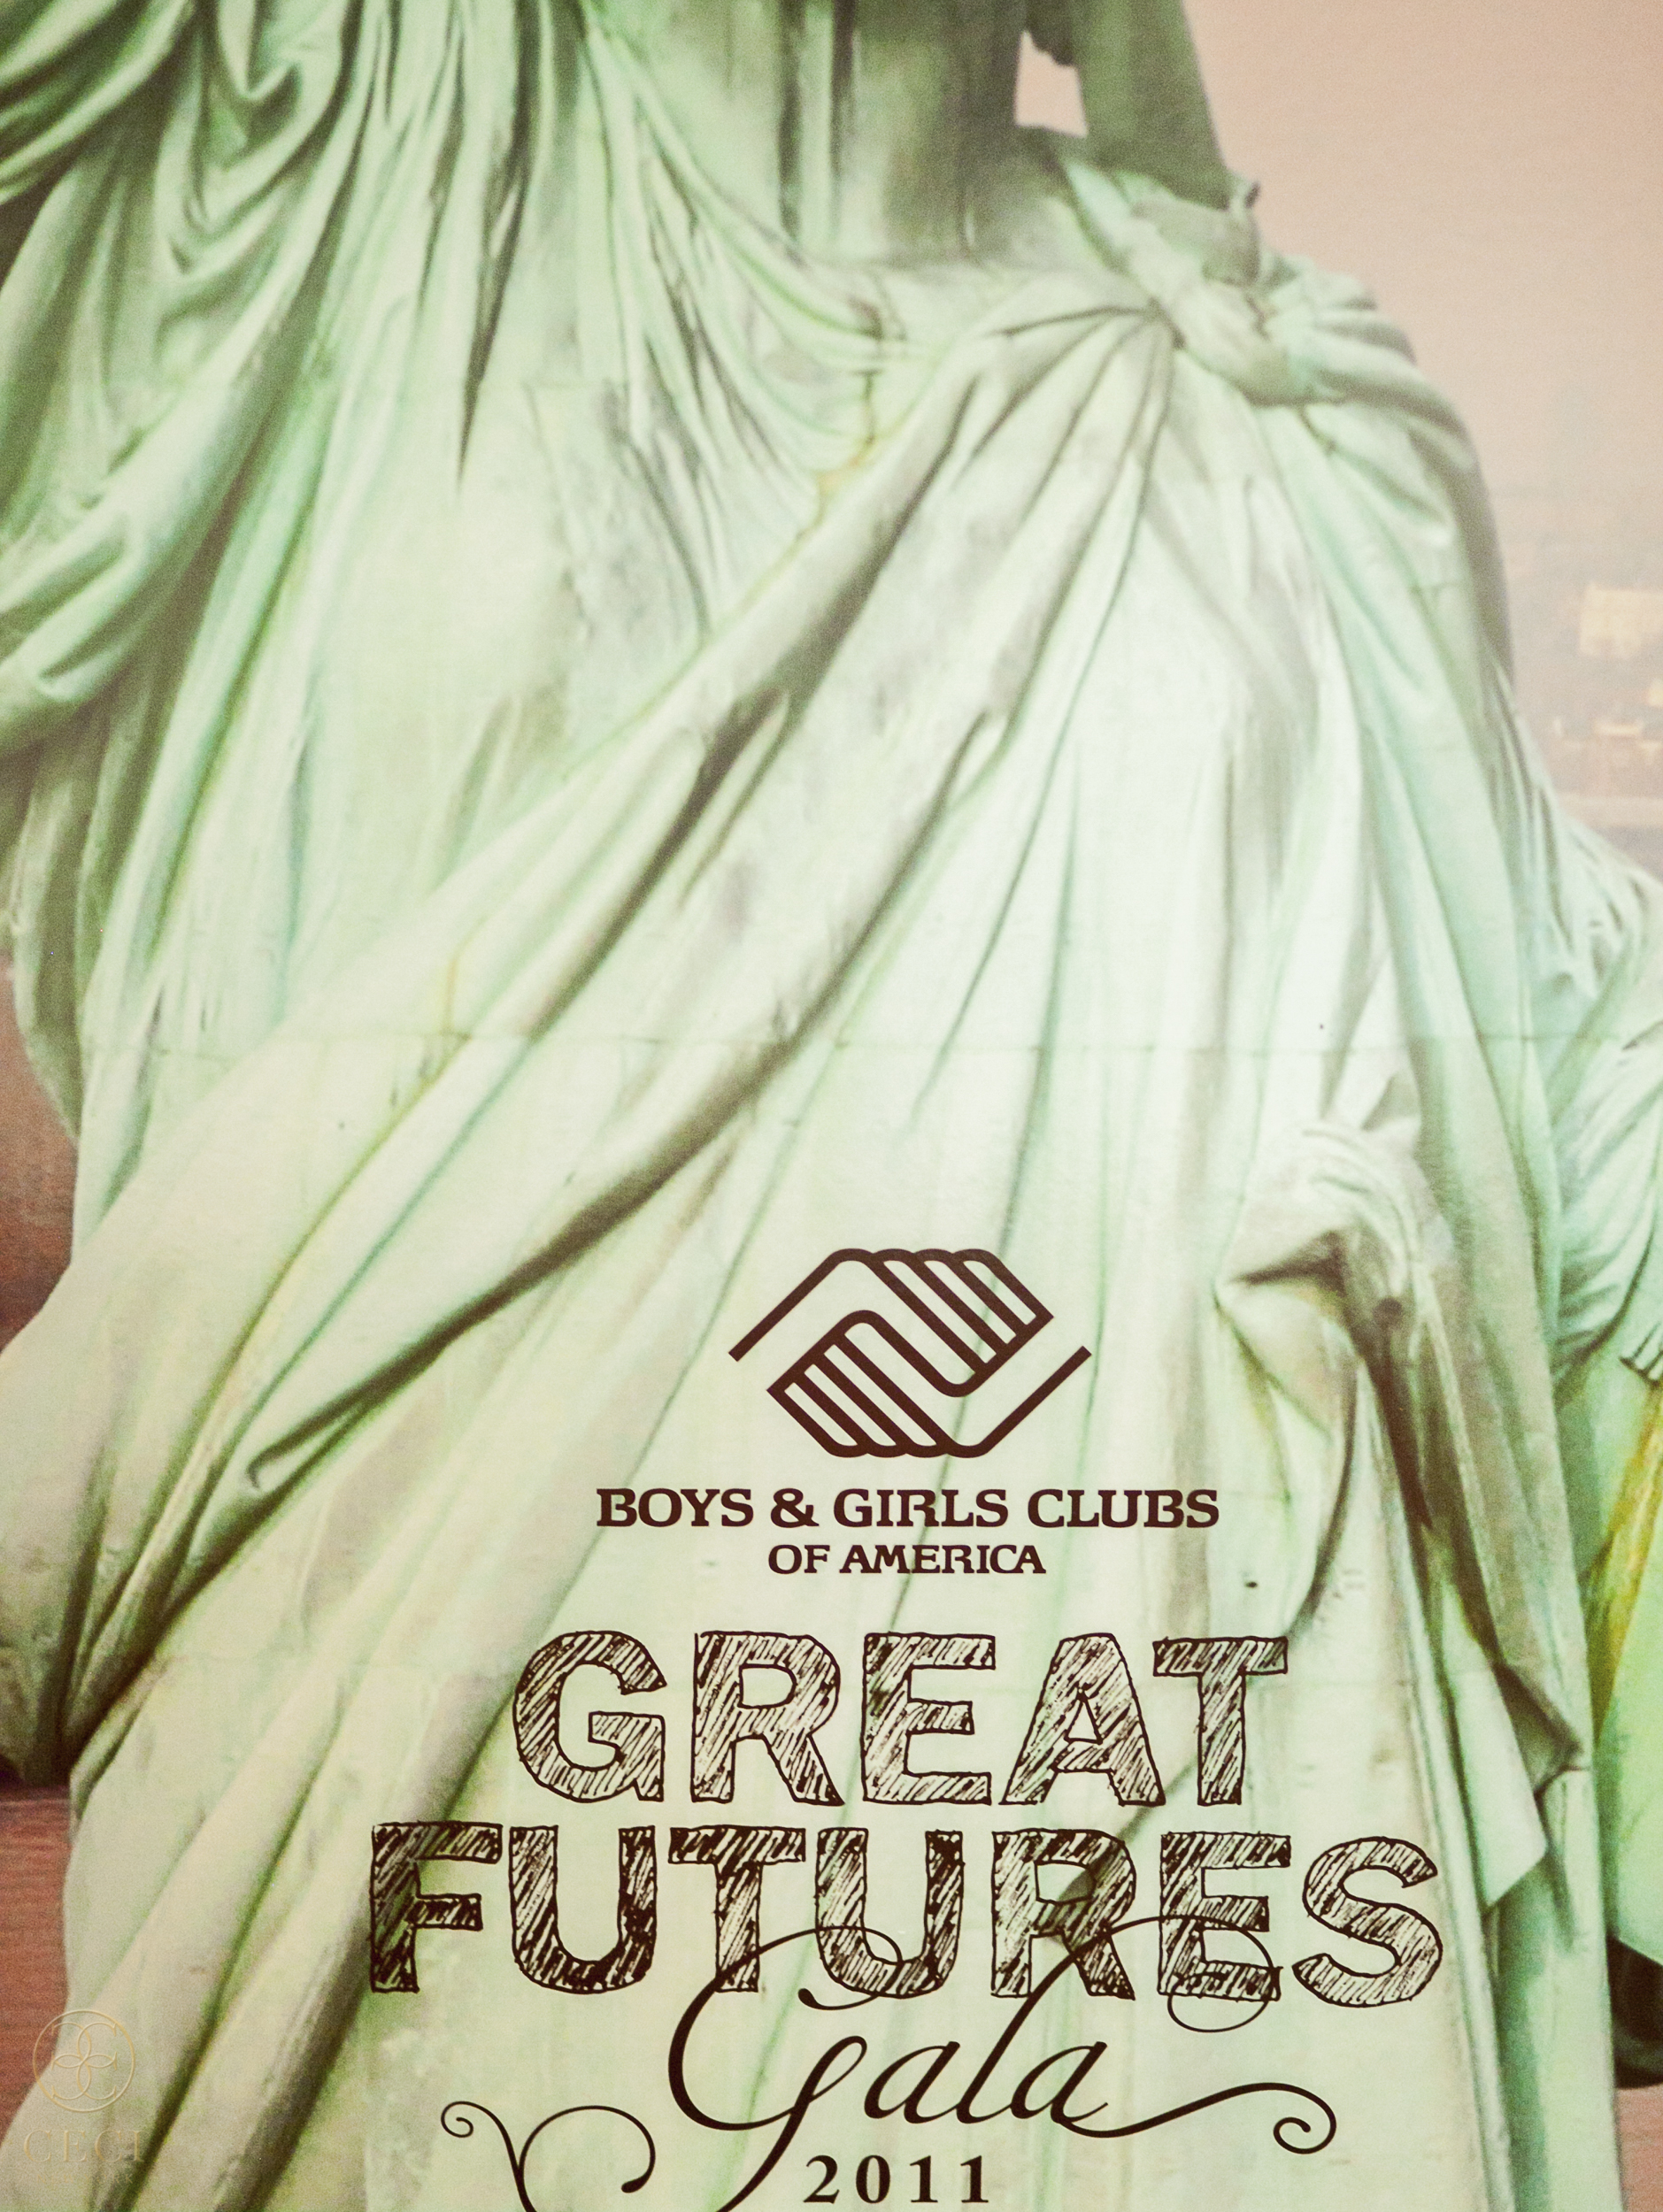 ceci-new-york-gives-back-boys-and-girls-club-of-america-great-futures-gala-2011-invitations-design-paper-accessories-signage-21.jpg